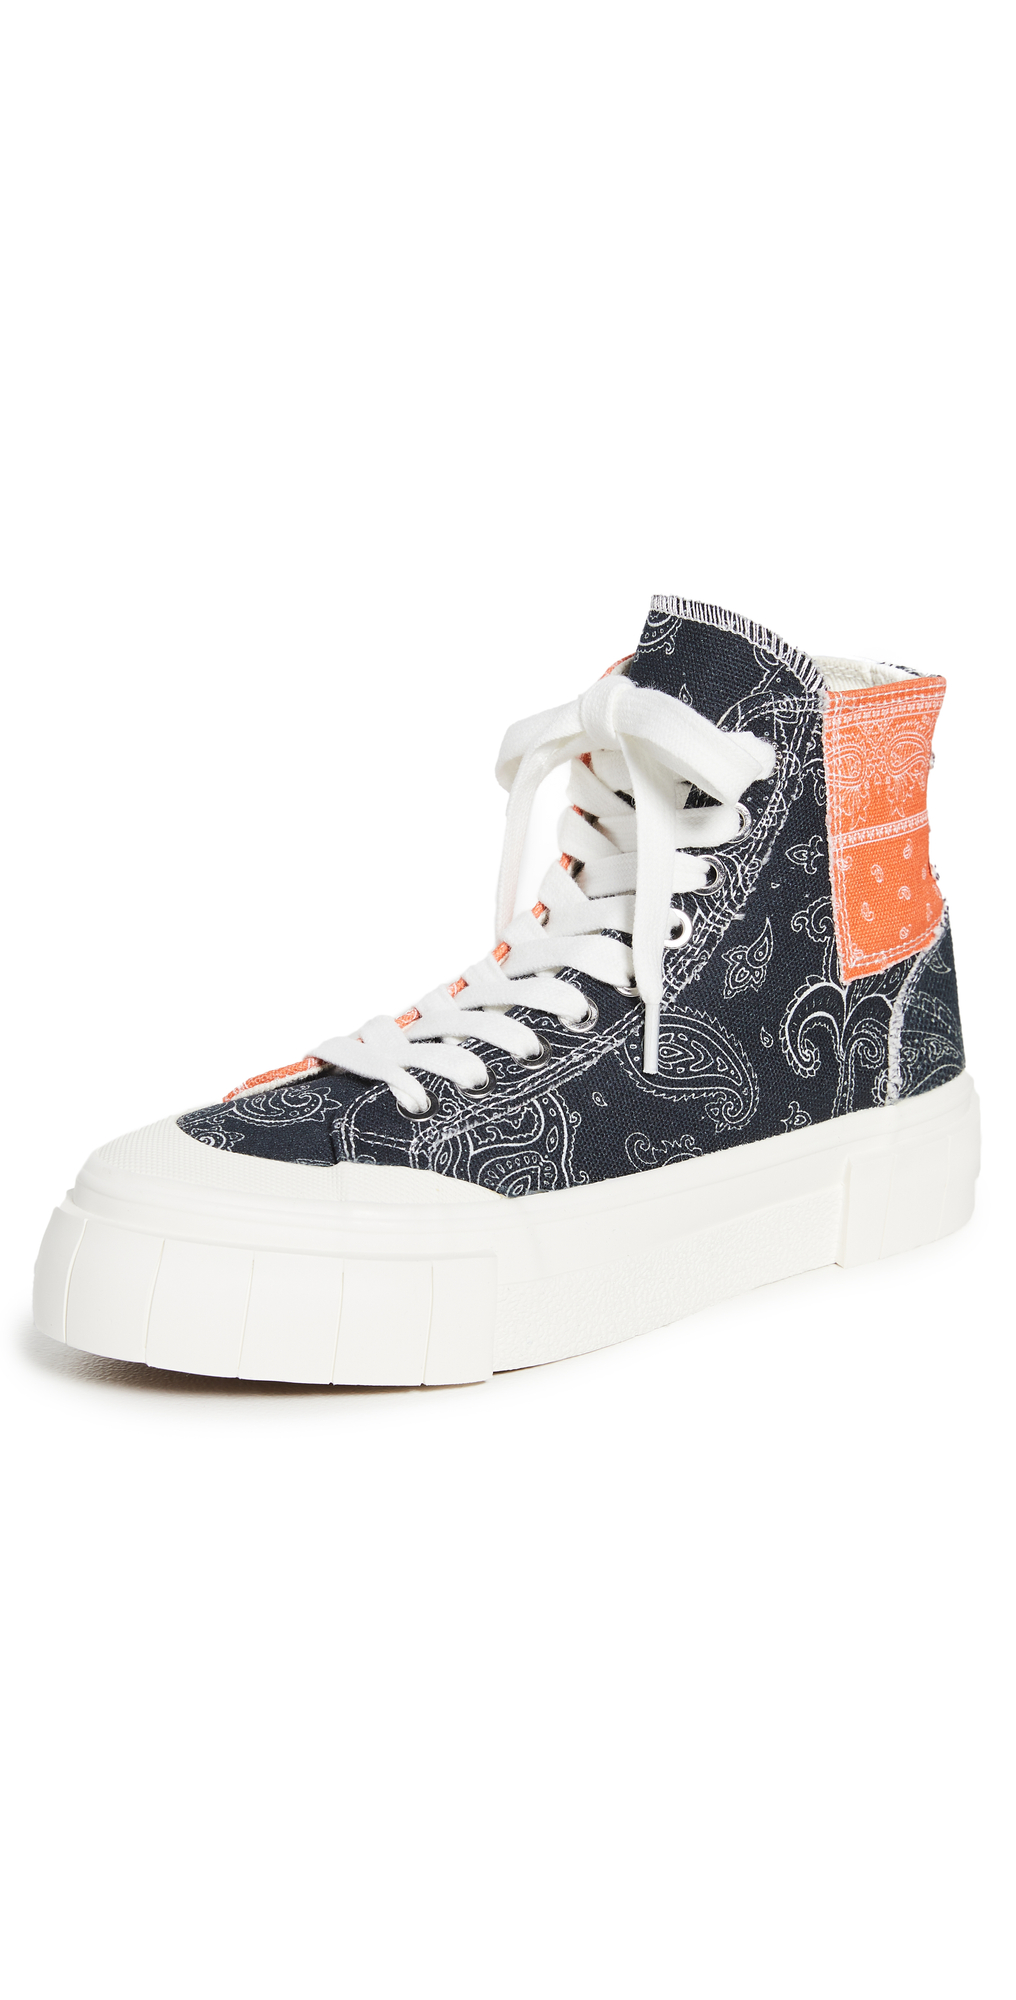 Palm Paisley Sneakers